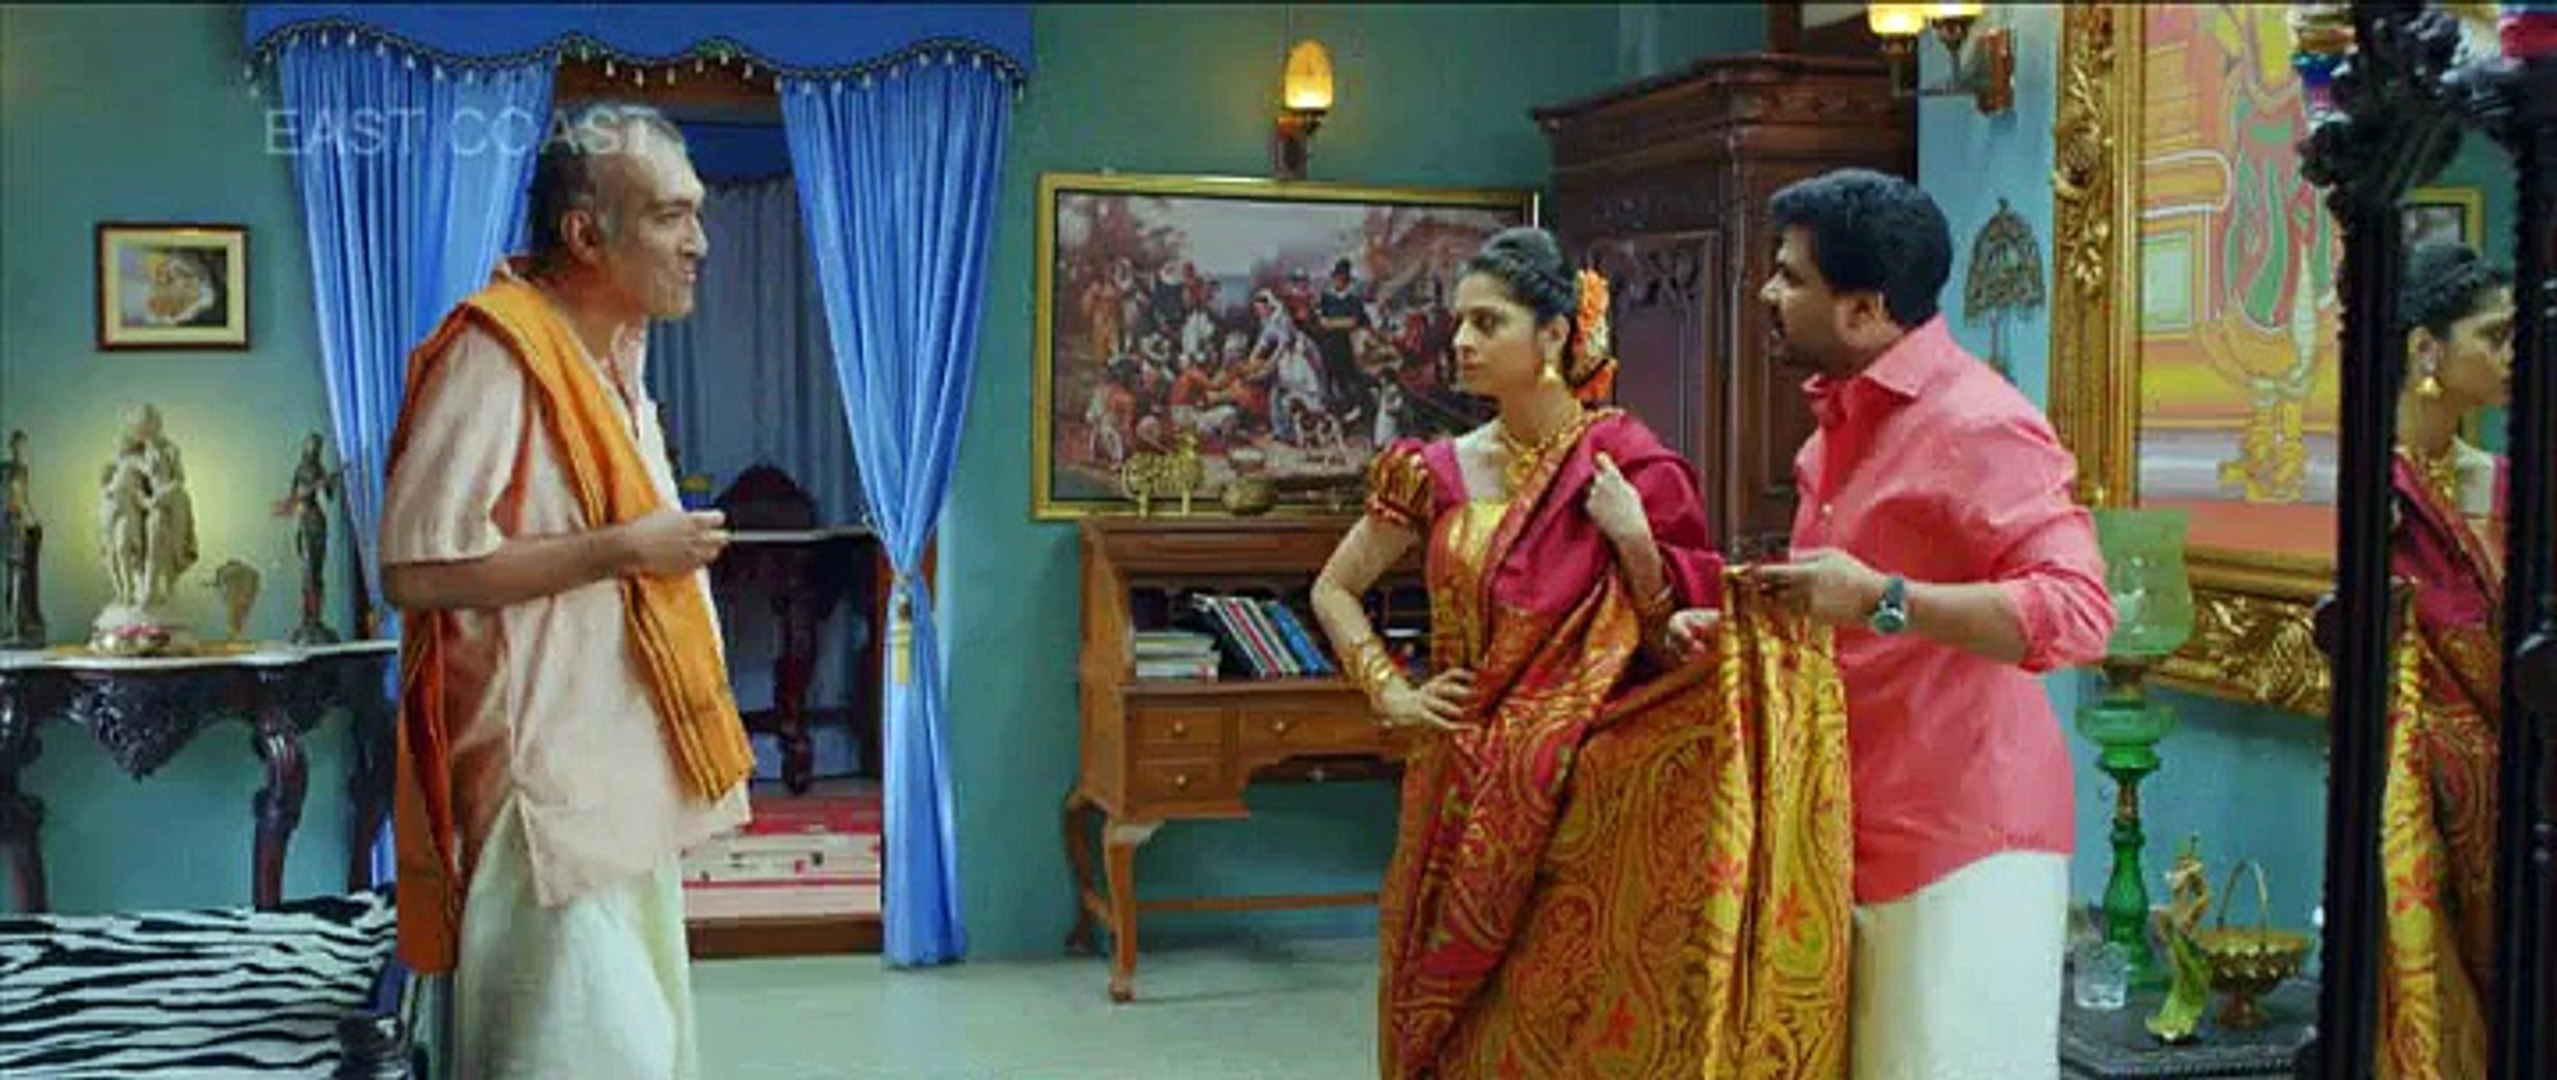 Vedhika Hot Dress Changing Scene From Here Debut Malayalam Movie